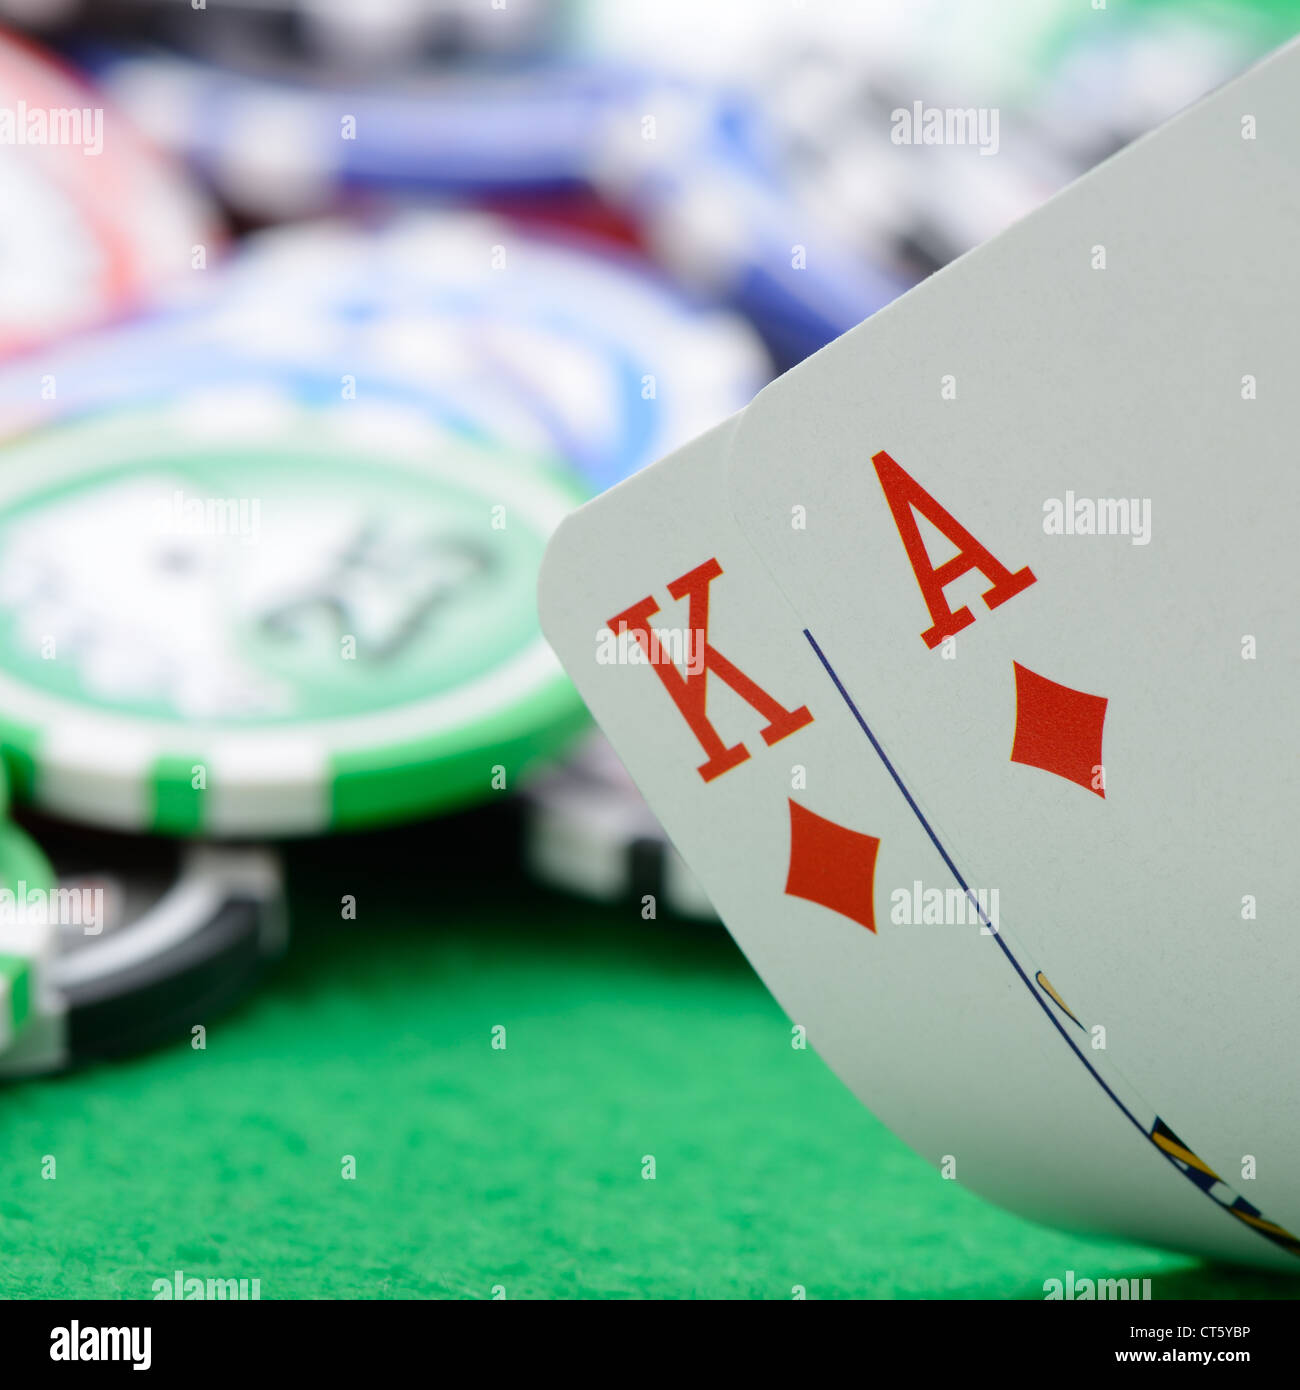 Gaming cards in hand on the green cloth. A winning combination in Black Jack - Stock Image